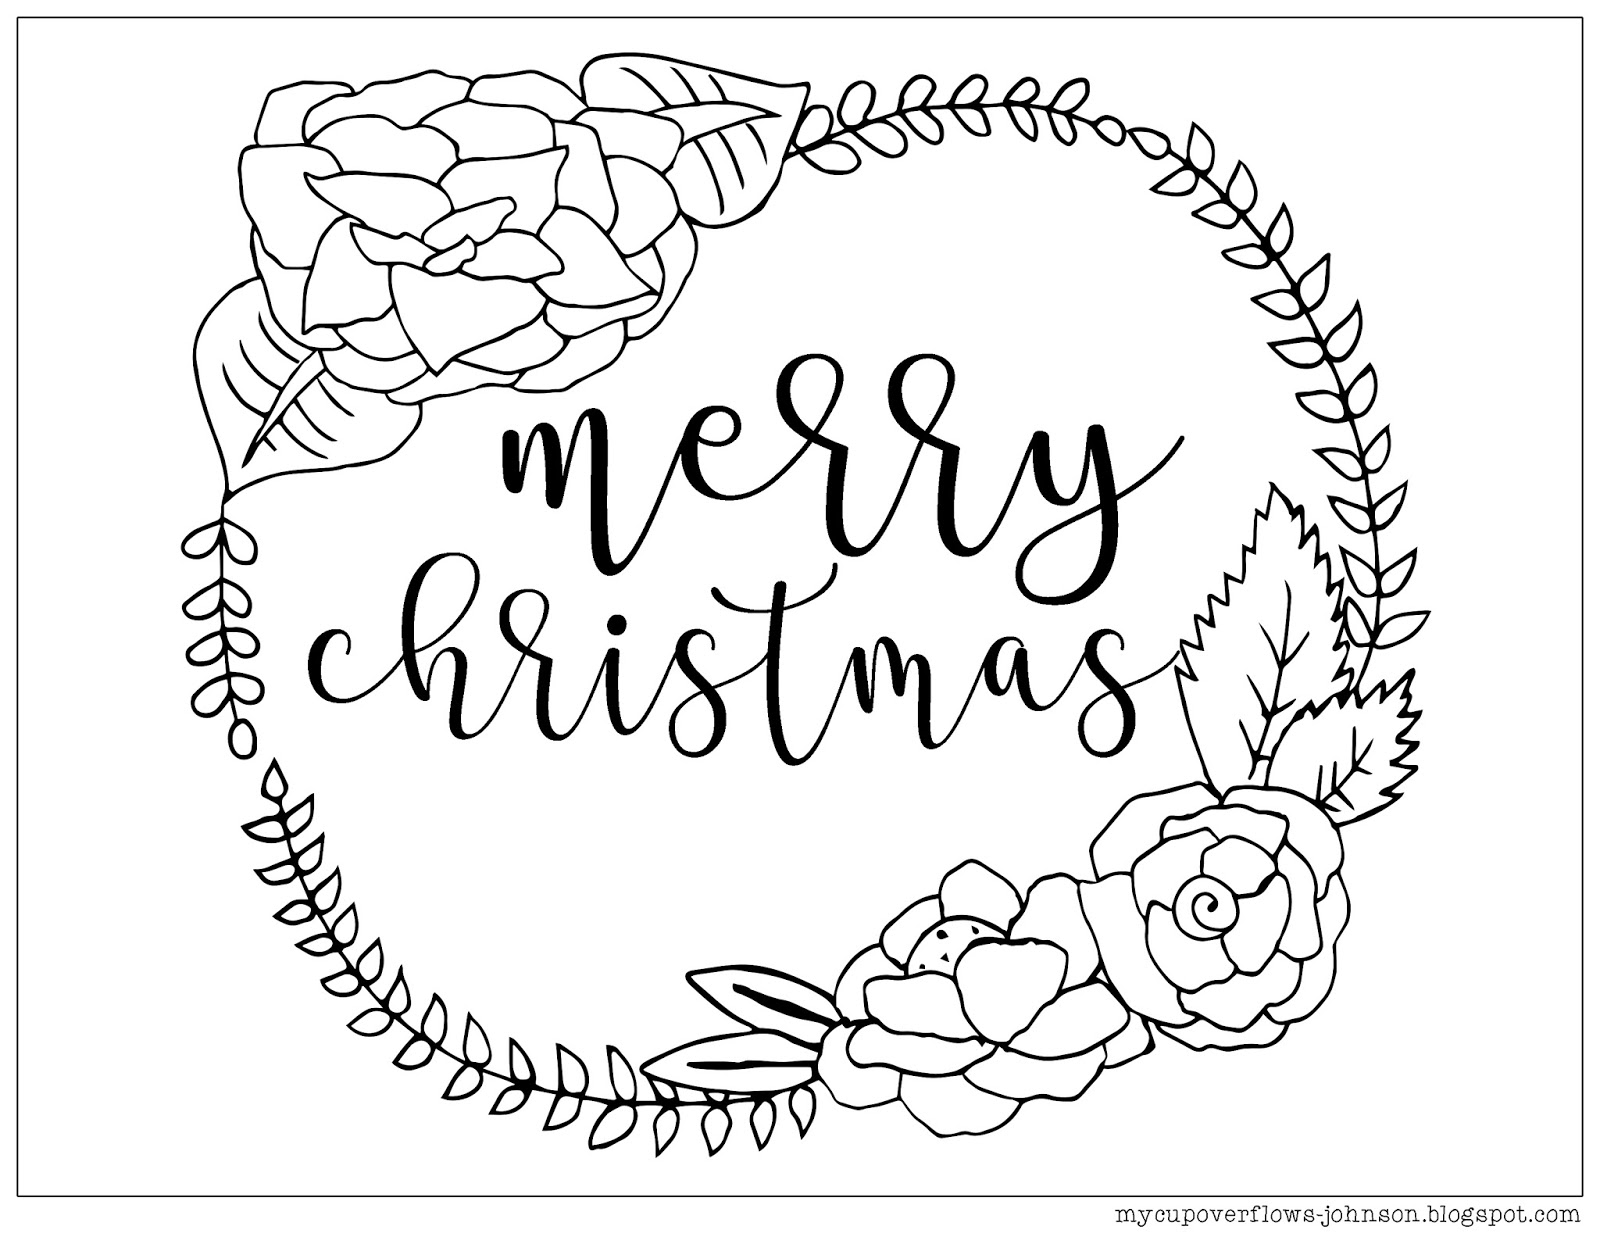 My Cup Overflows: Christmas Coloring Pages